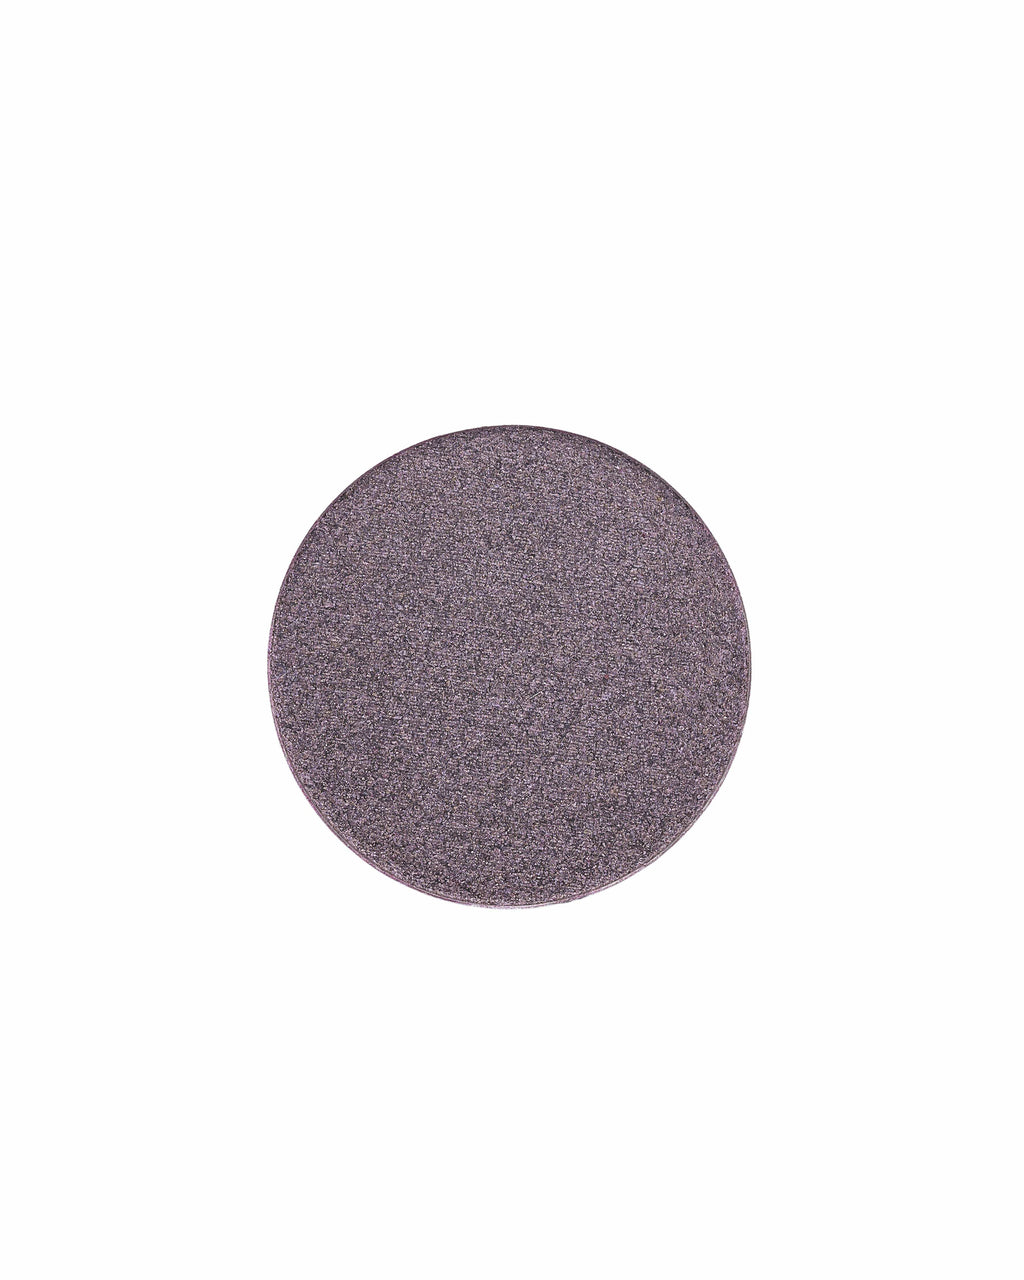 Crushed Violet Eyeshadow Magnetic Pan